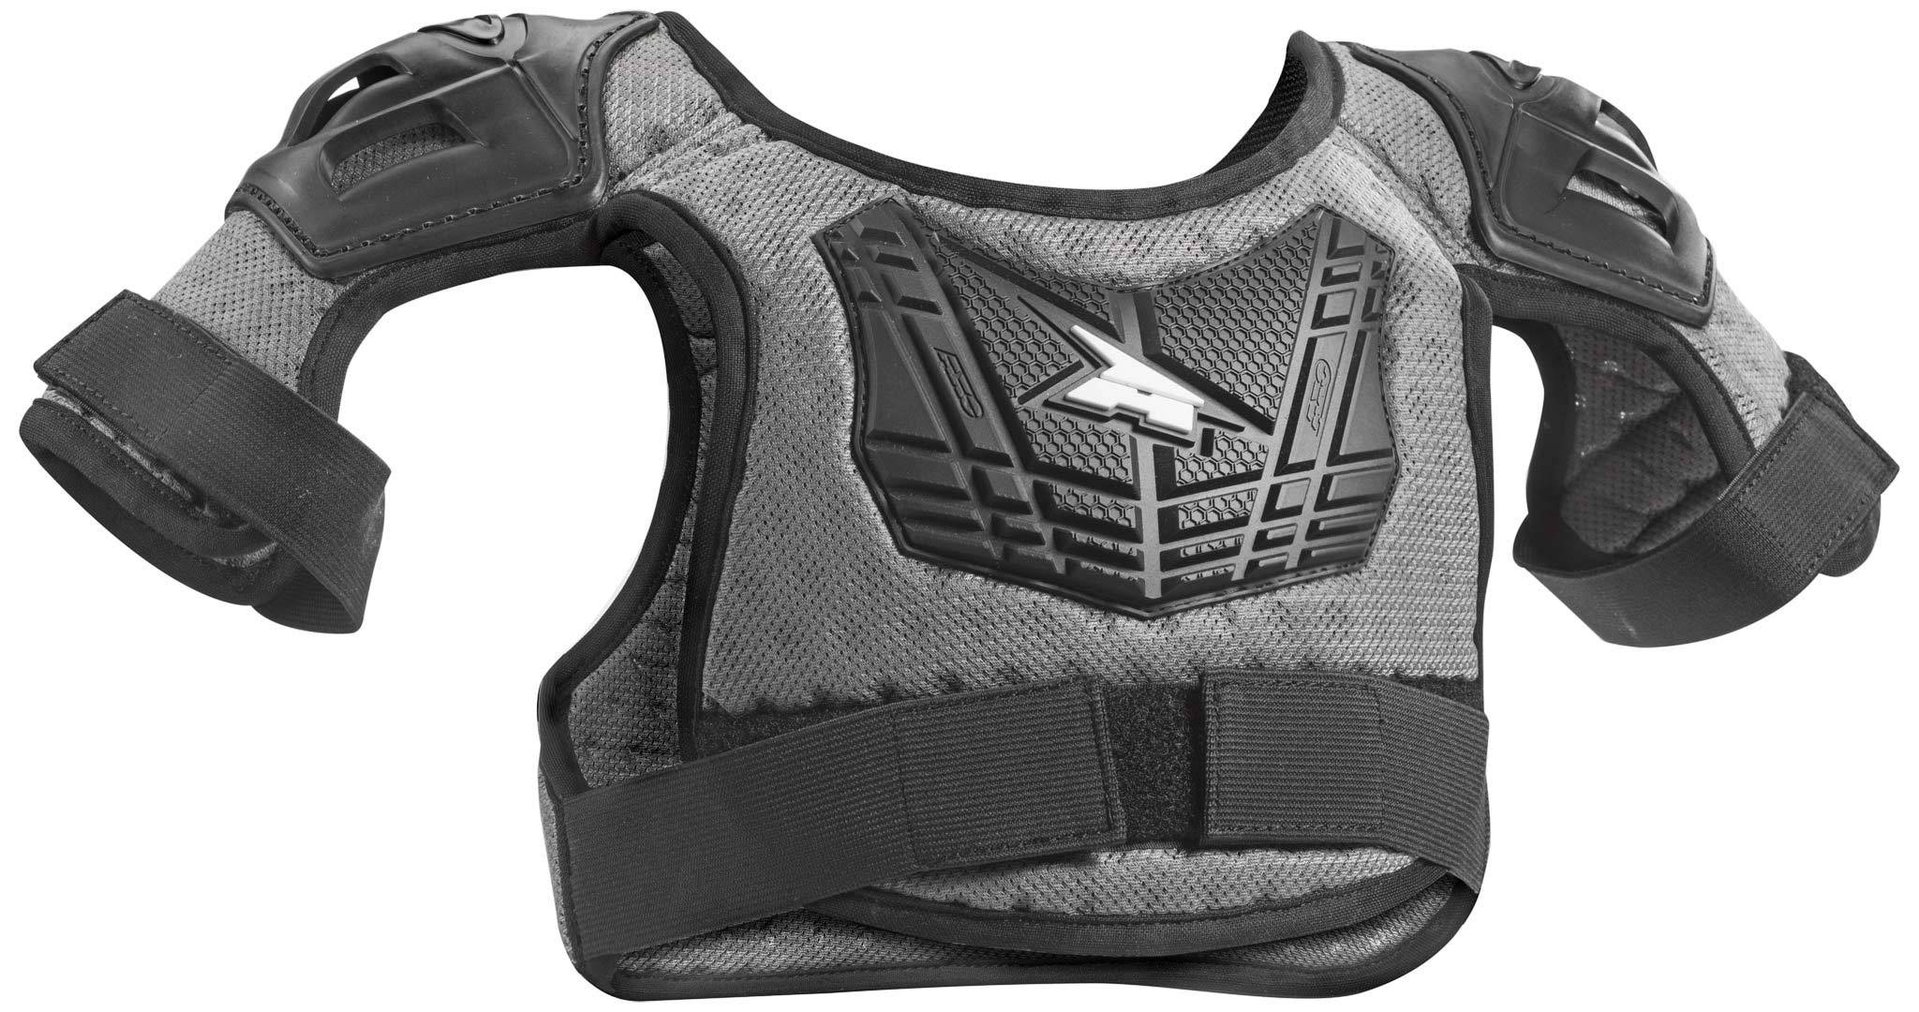 axo-pee-wee-roost-guard-jr-black-sm